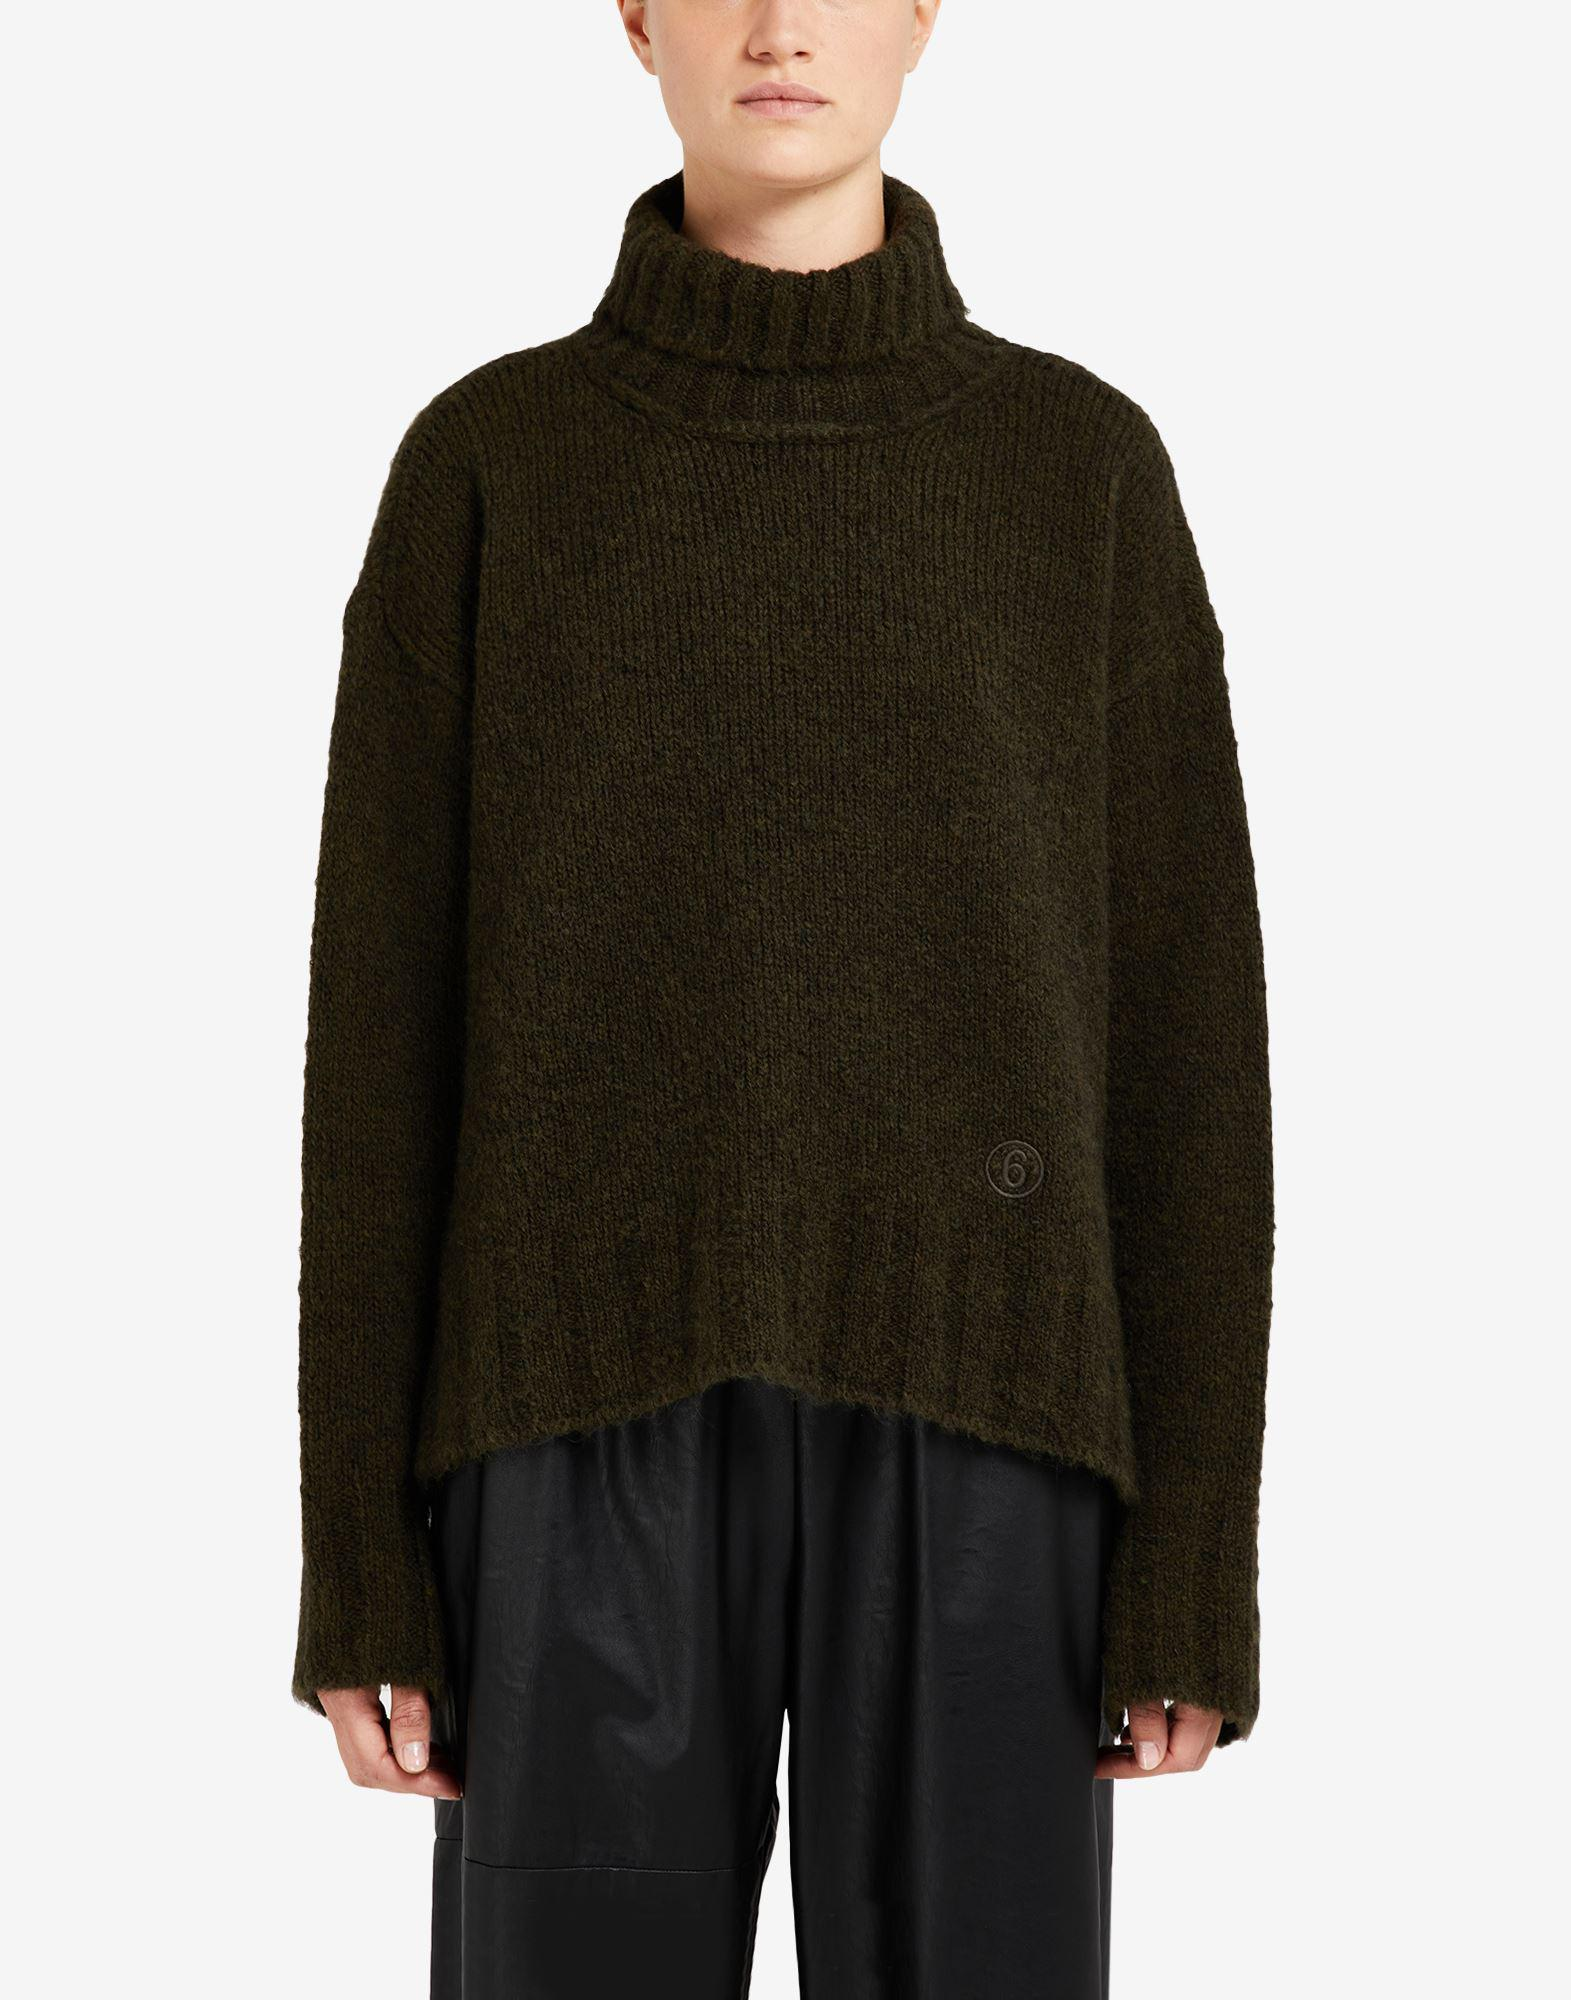 Hairy knit roll-neck sweater 3